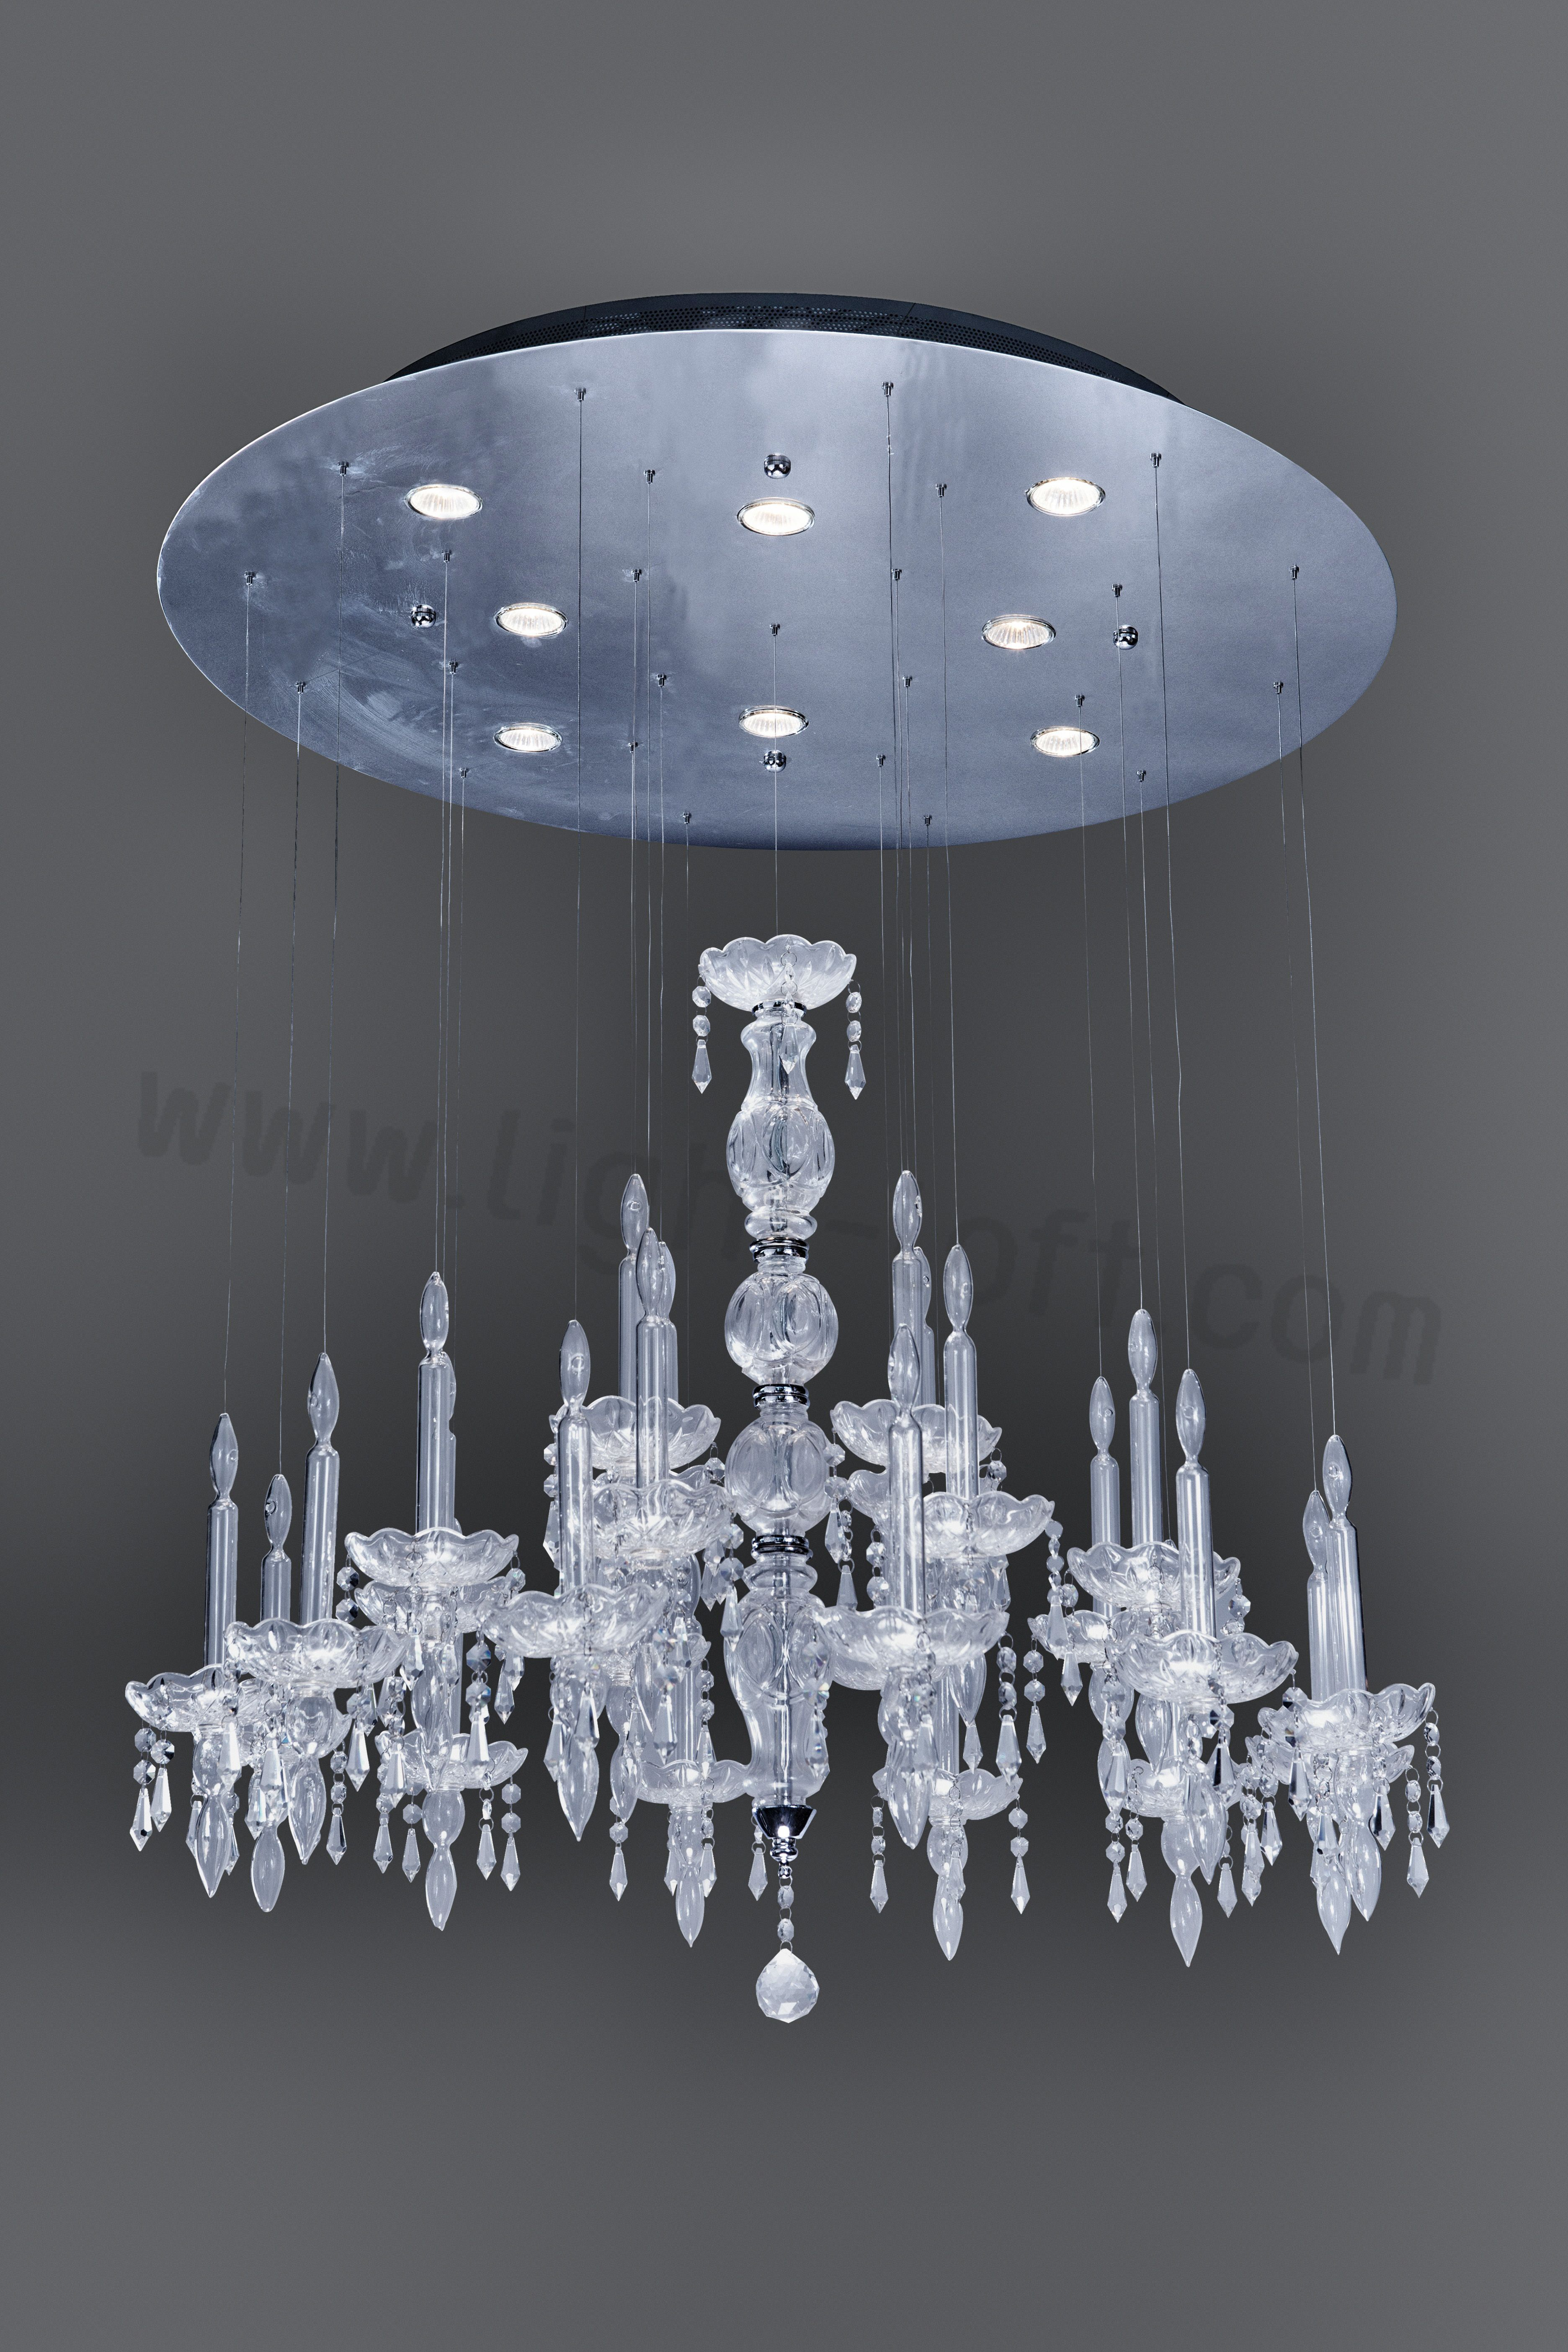 If you prefer classical lighting fixtures chandeliers but still like to stay up to